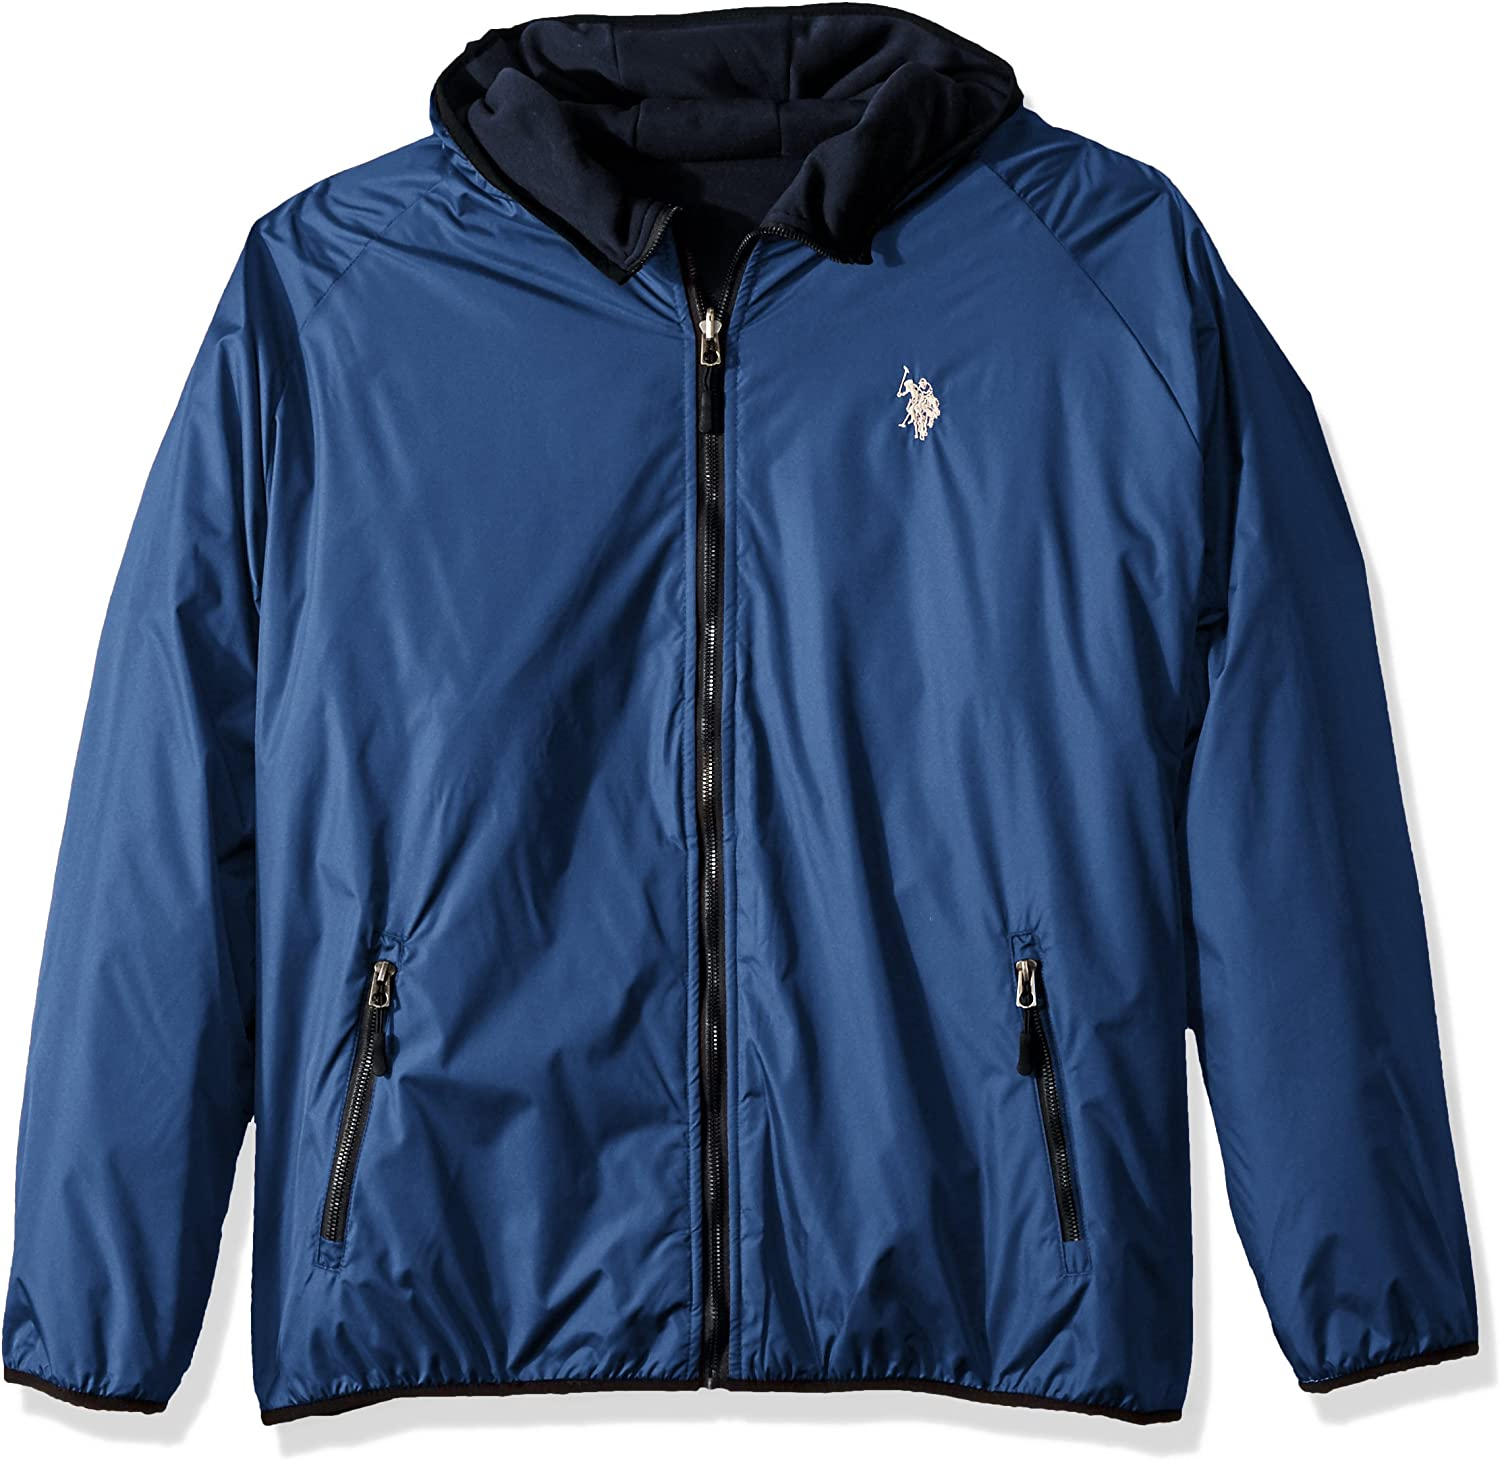 Shell Poly To Fleece Polo Jacket AssnMen's Us Hooded Reversible K1cTFJl